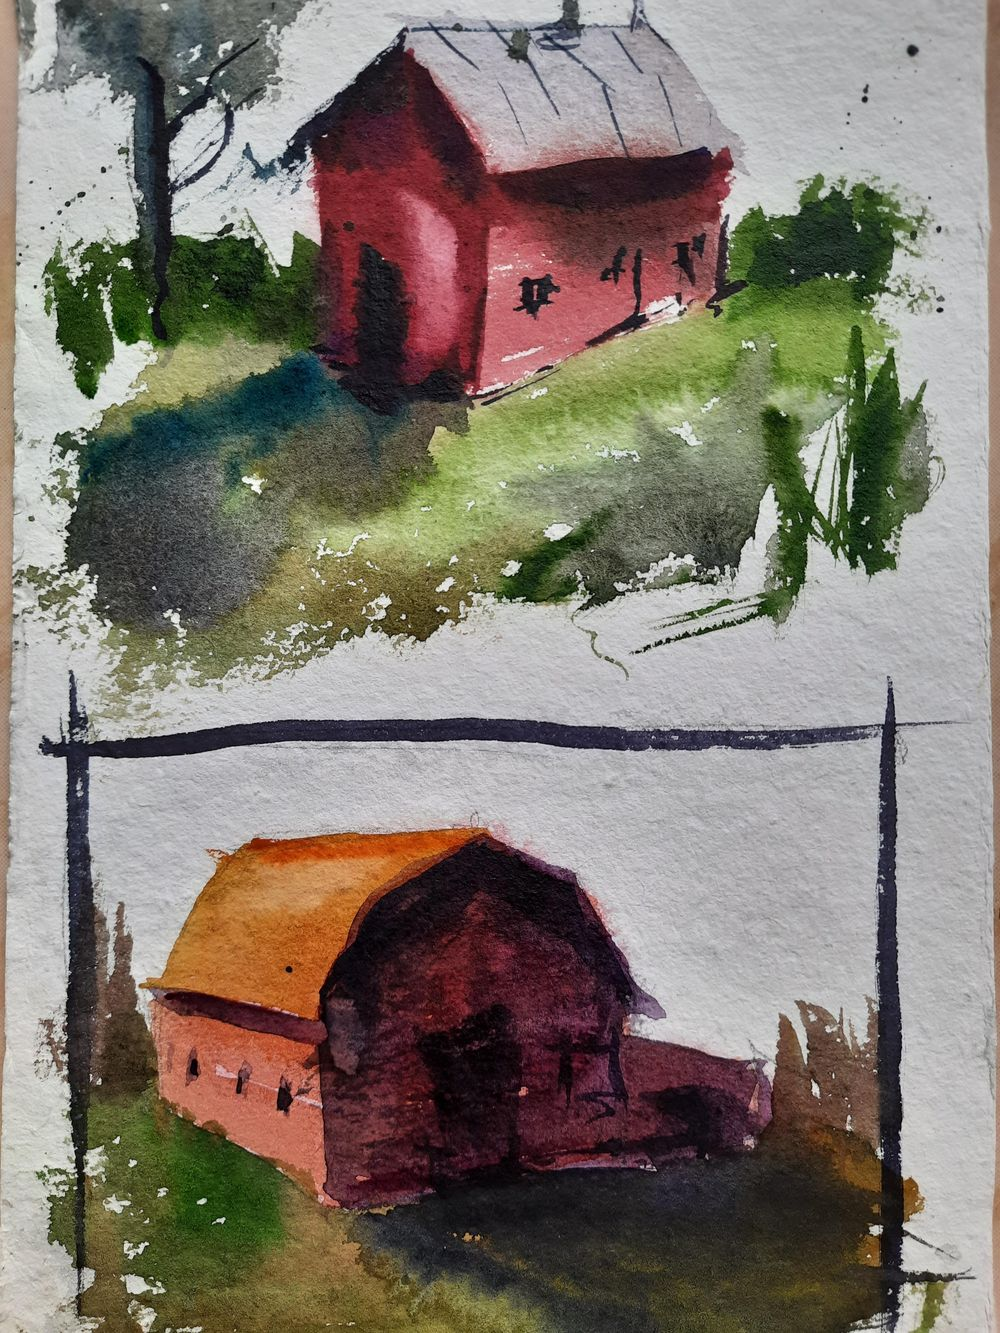 Watercolor workout - image 11 - student project